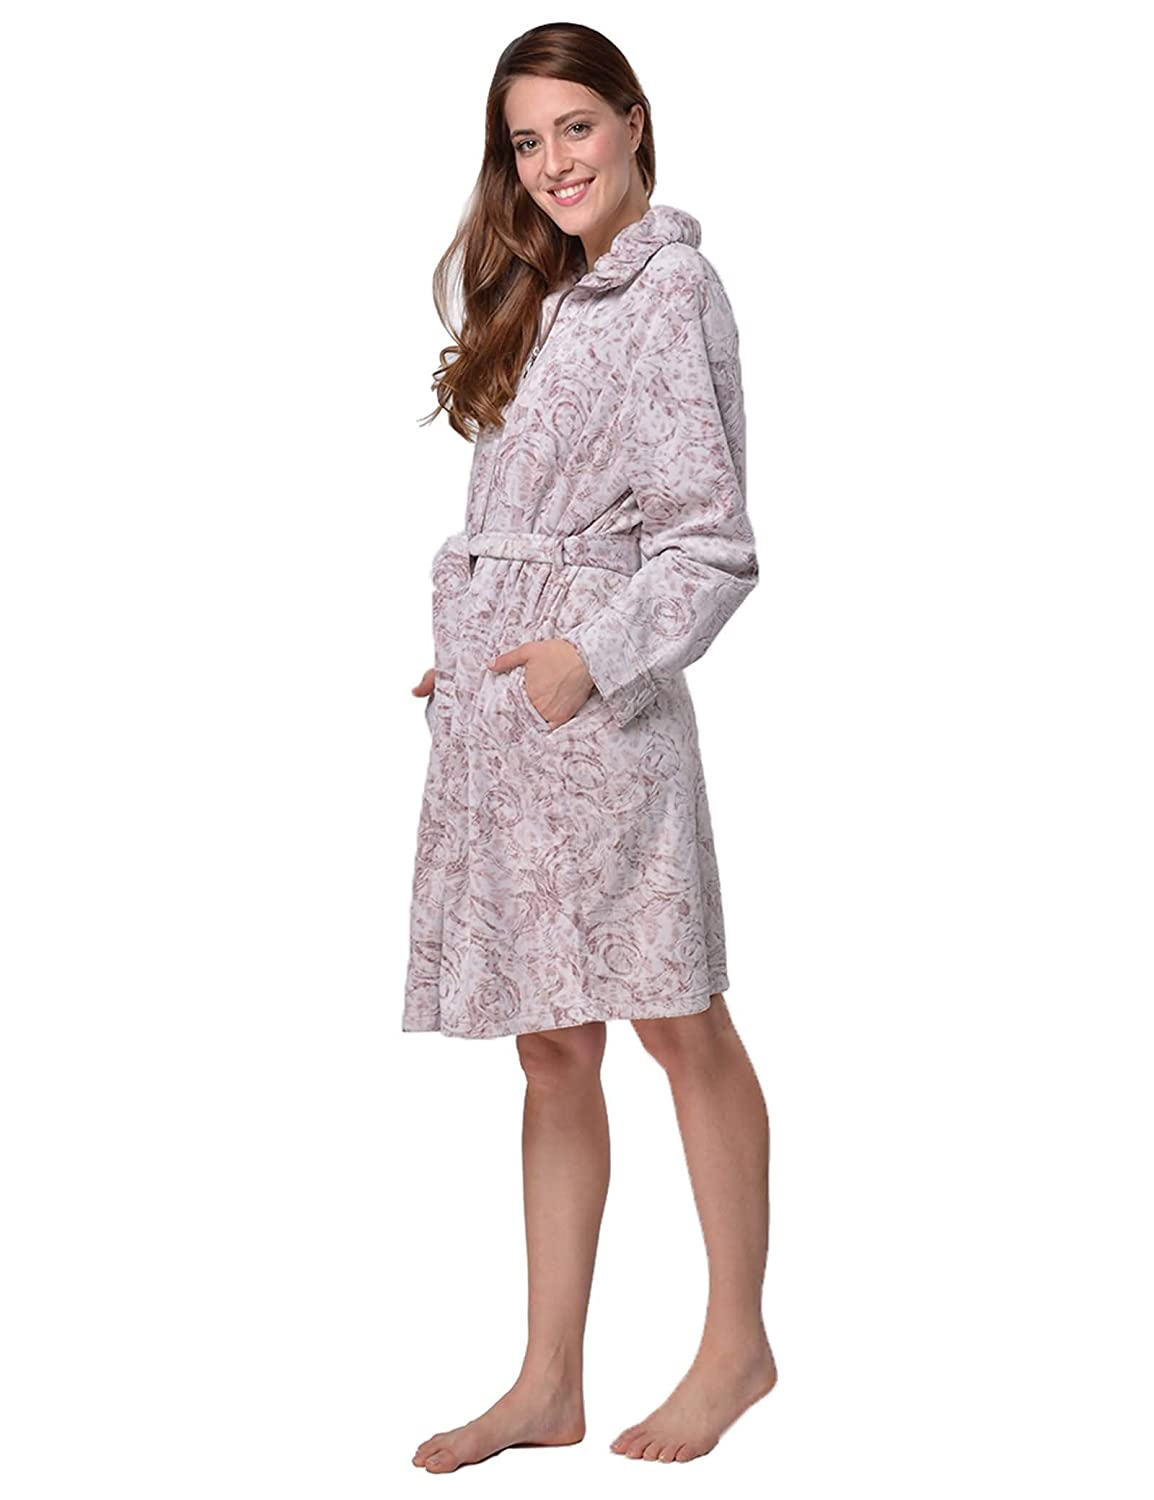 RAIKOU Ladies Luxury Bathrobe Dressing Gown Sauna Coat Loungewear Soft and Super  Fluffy Coral Fleece Relax Terry Microfiber with Burnout Technique and ... a82896b4d